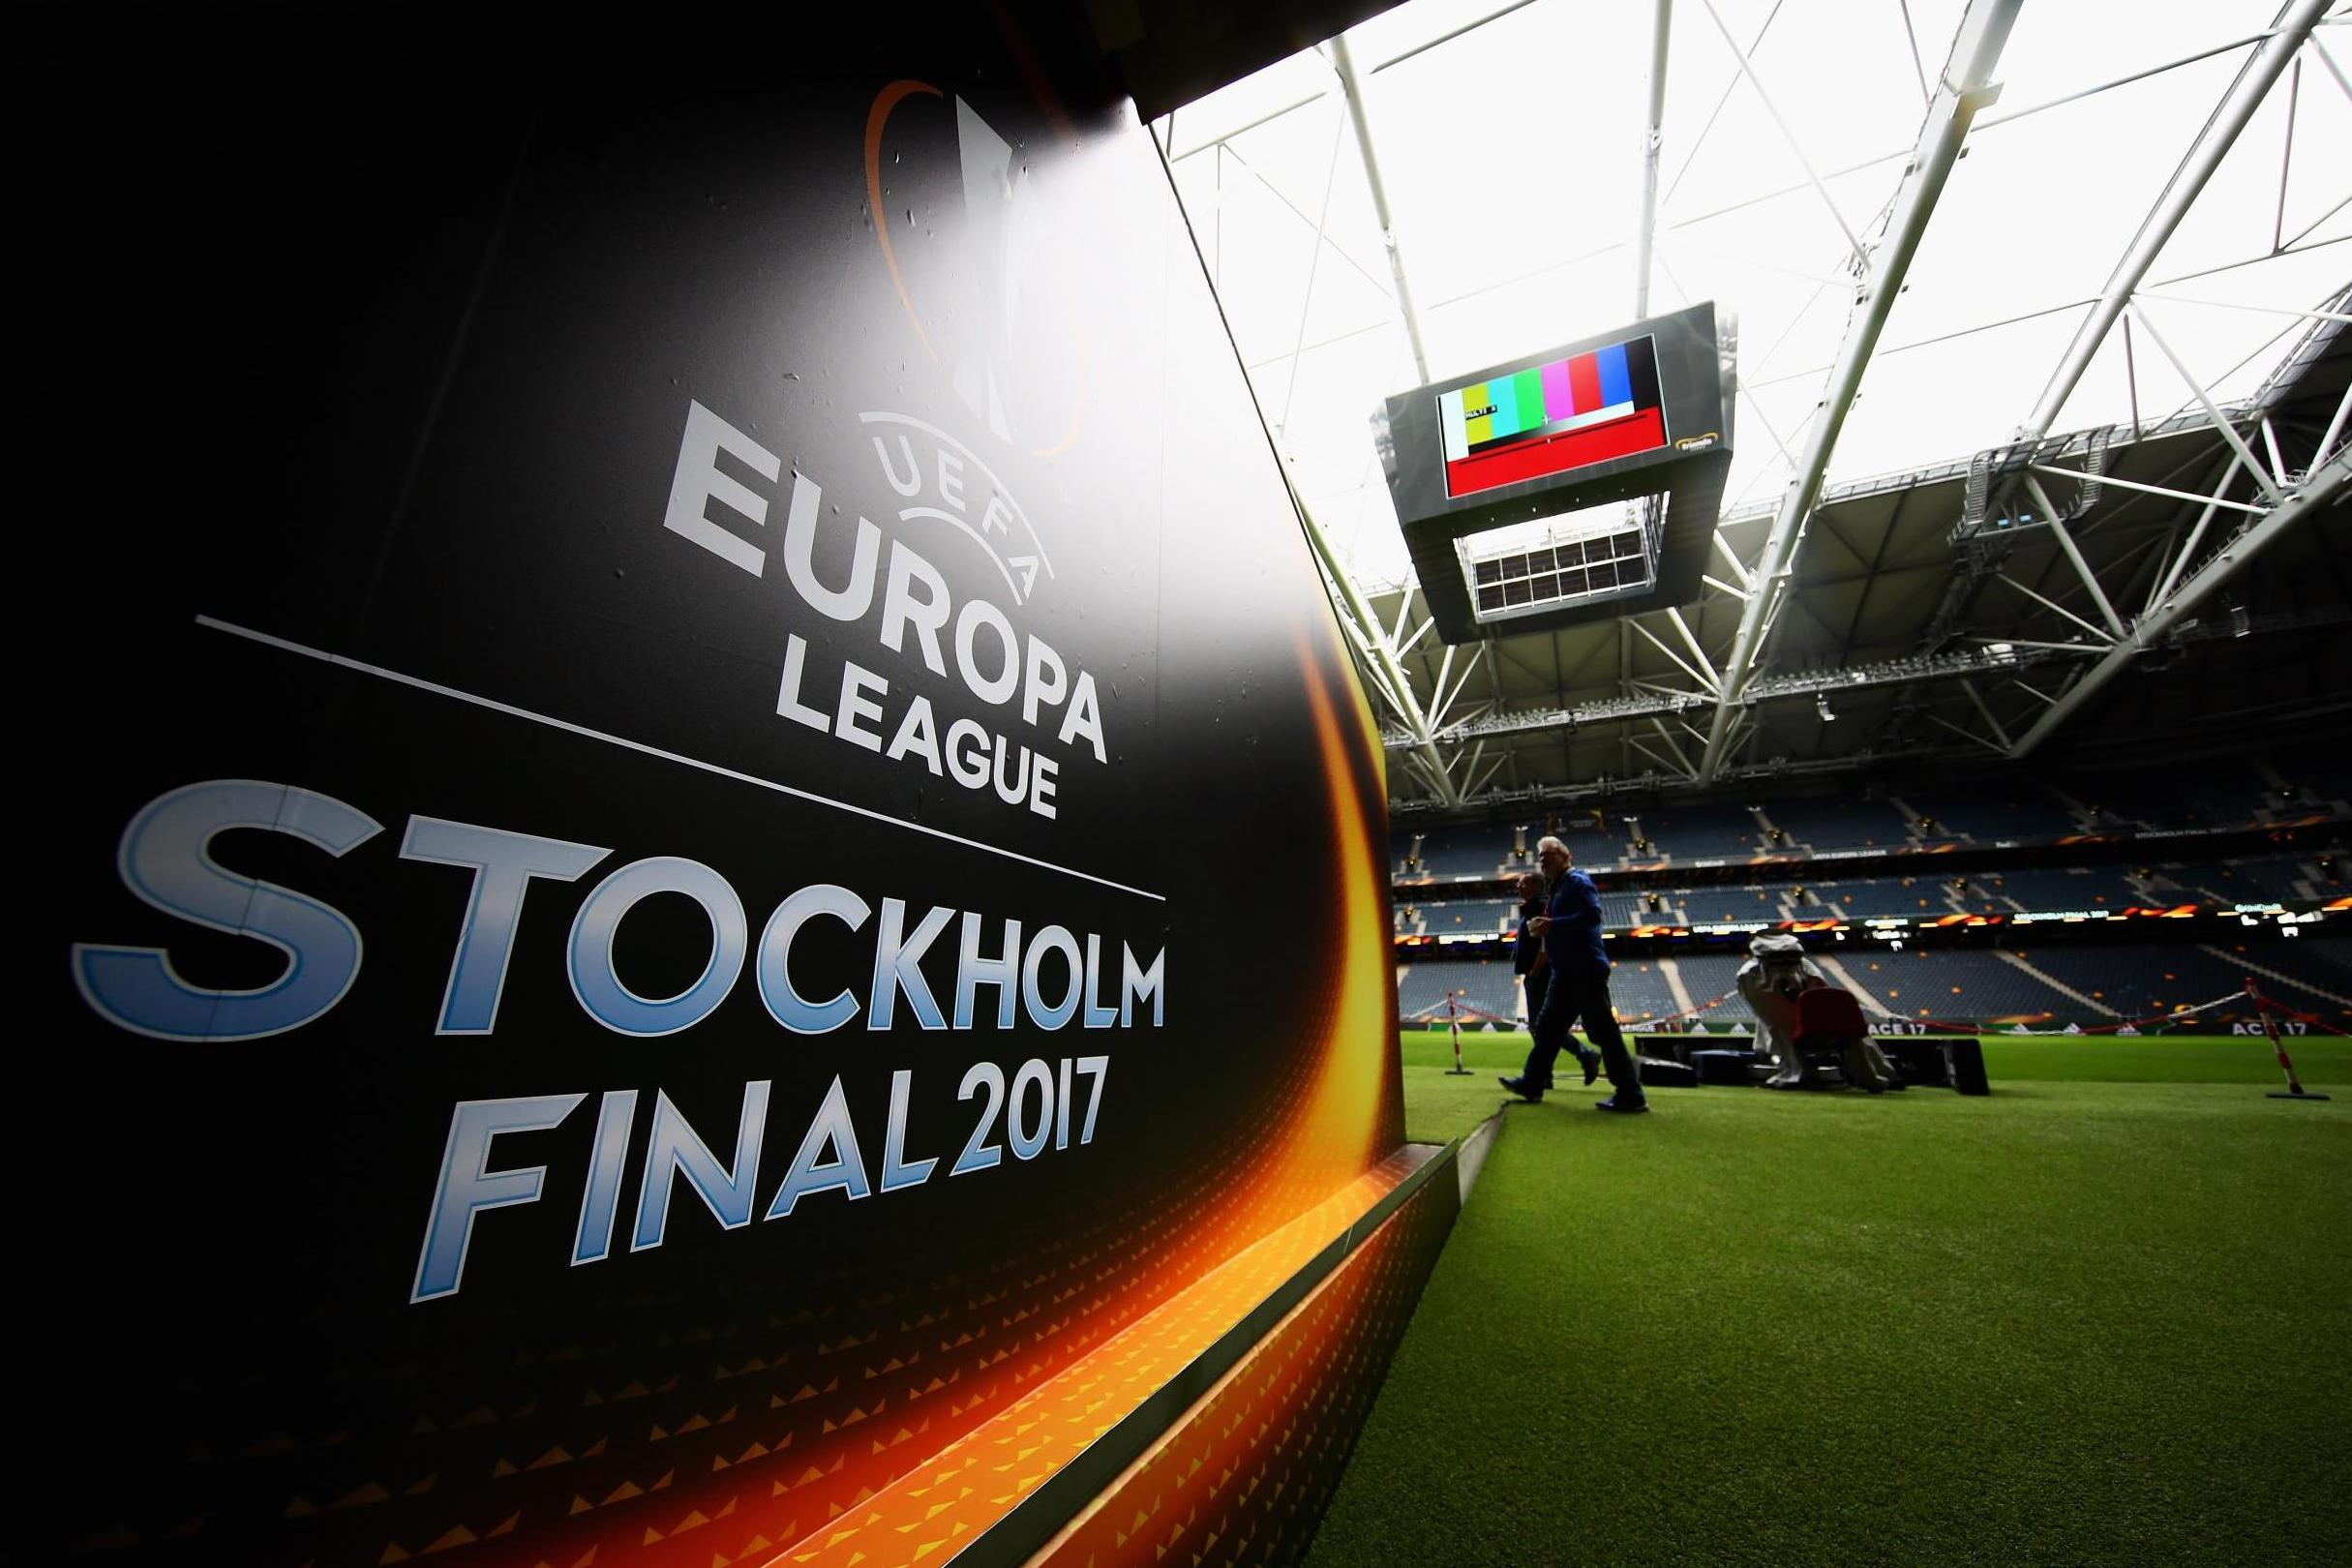 EUROPA LEAGUE FINAL PREVIEW- Abdulmueez Alao